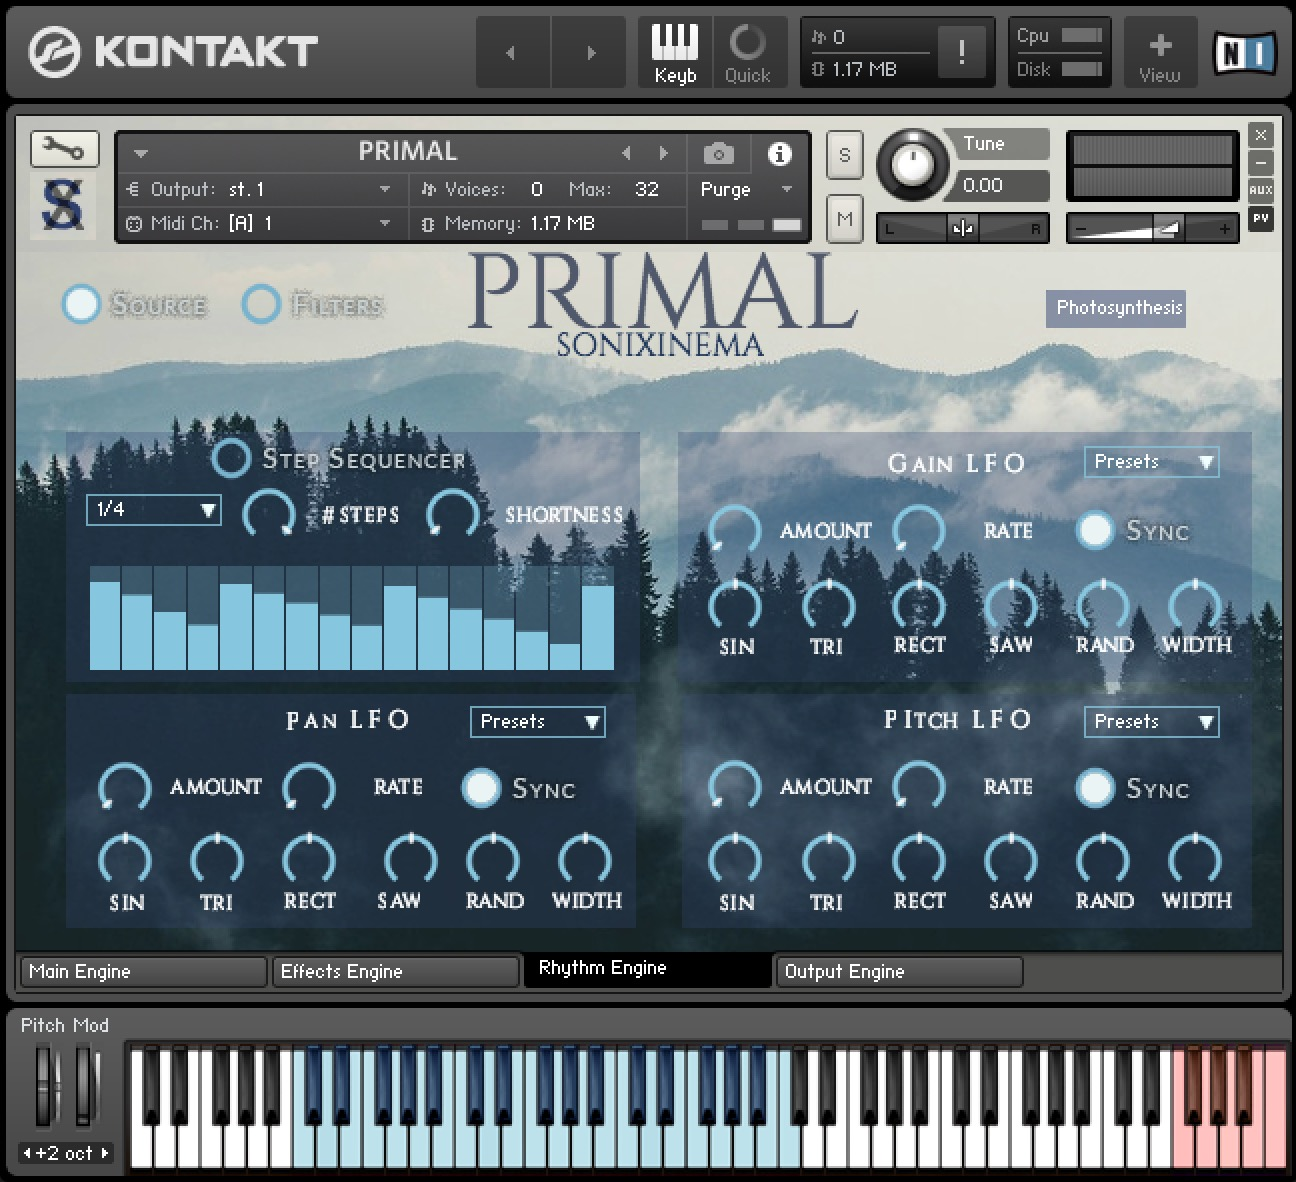 sonixinema-primal-3-rhythm-engine